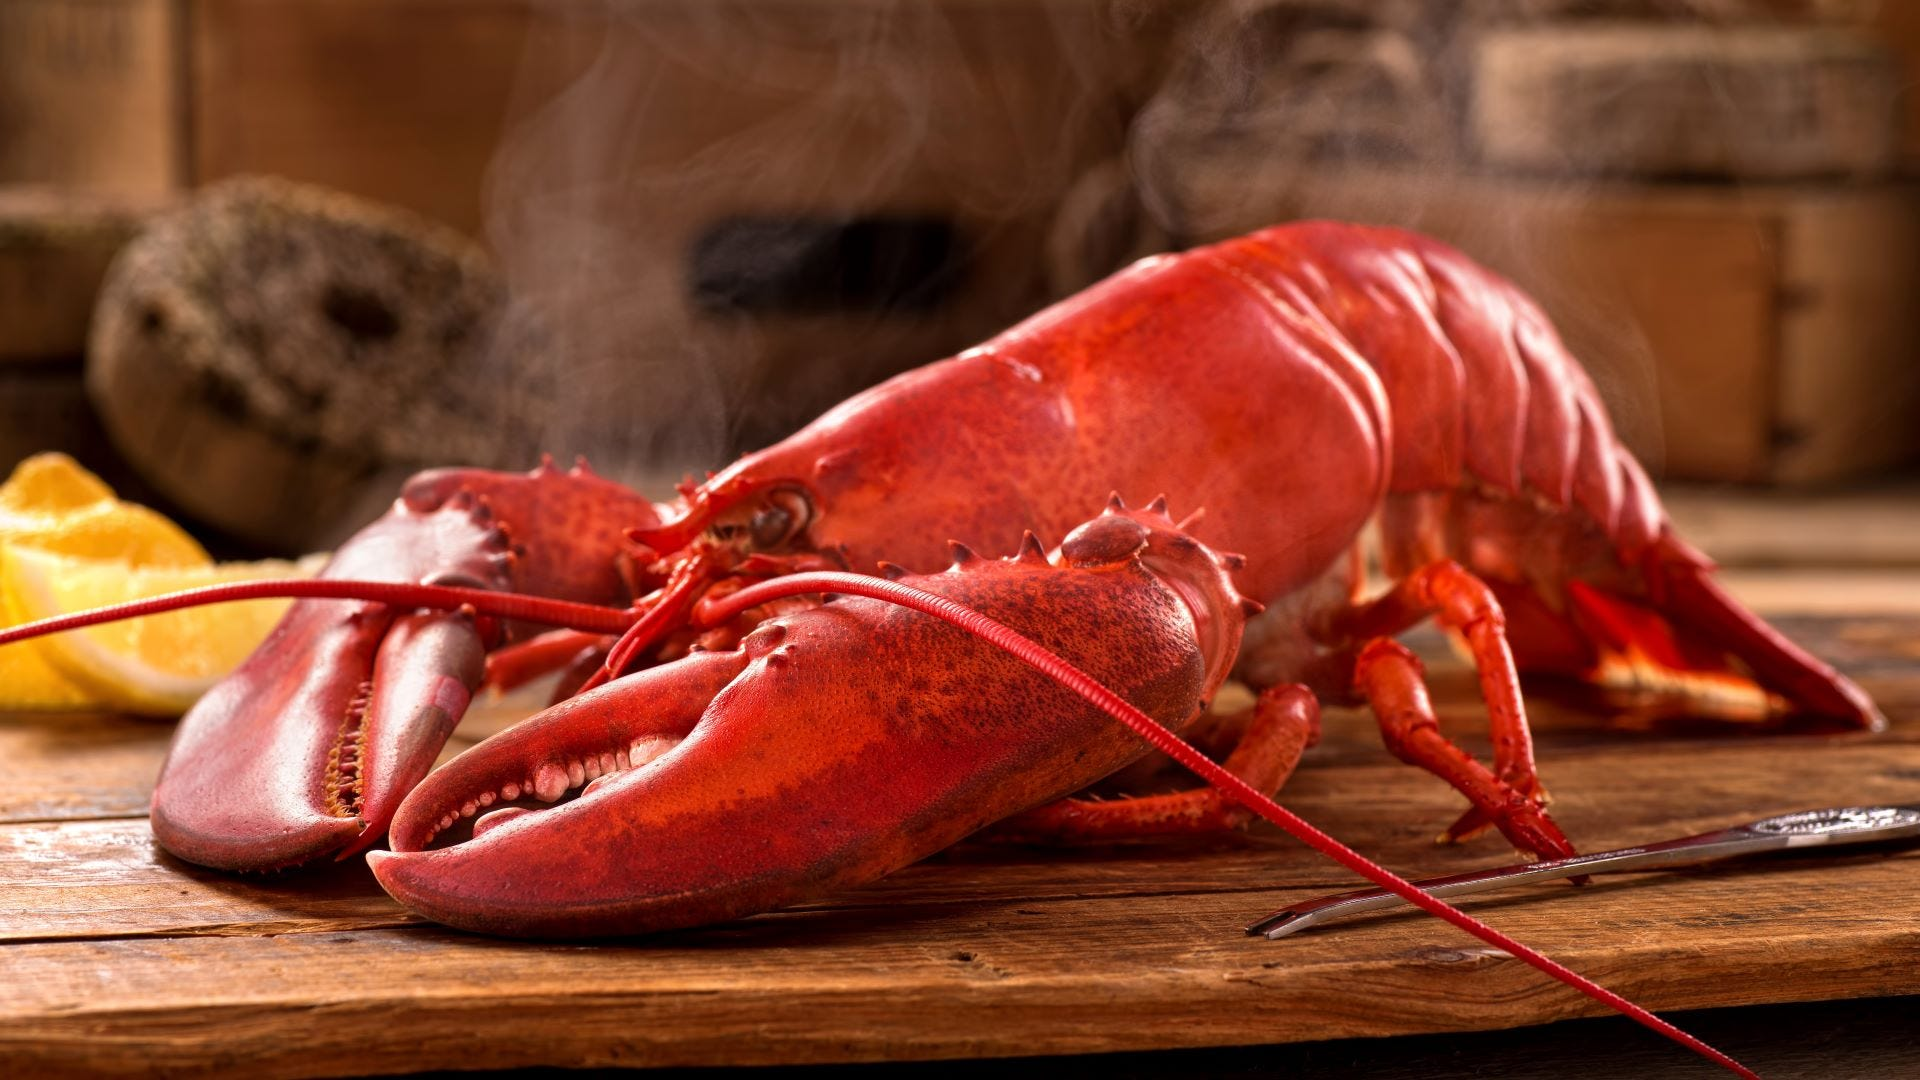 A lobster on a wooden table with steam coming off it.